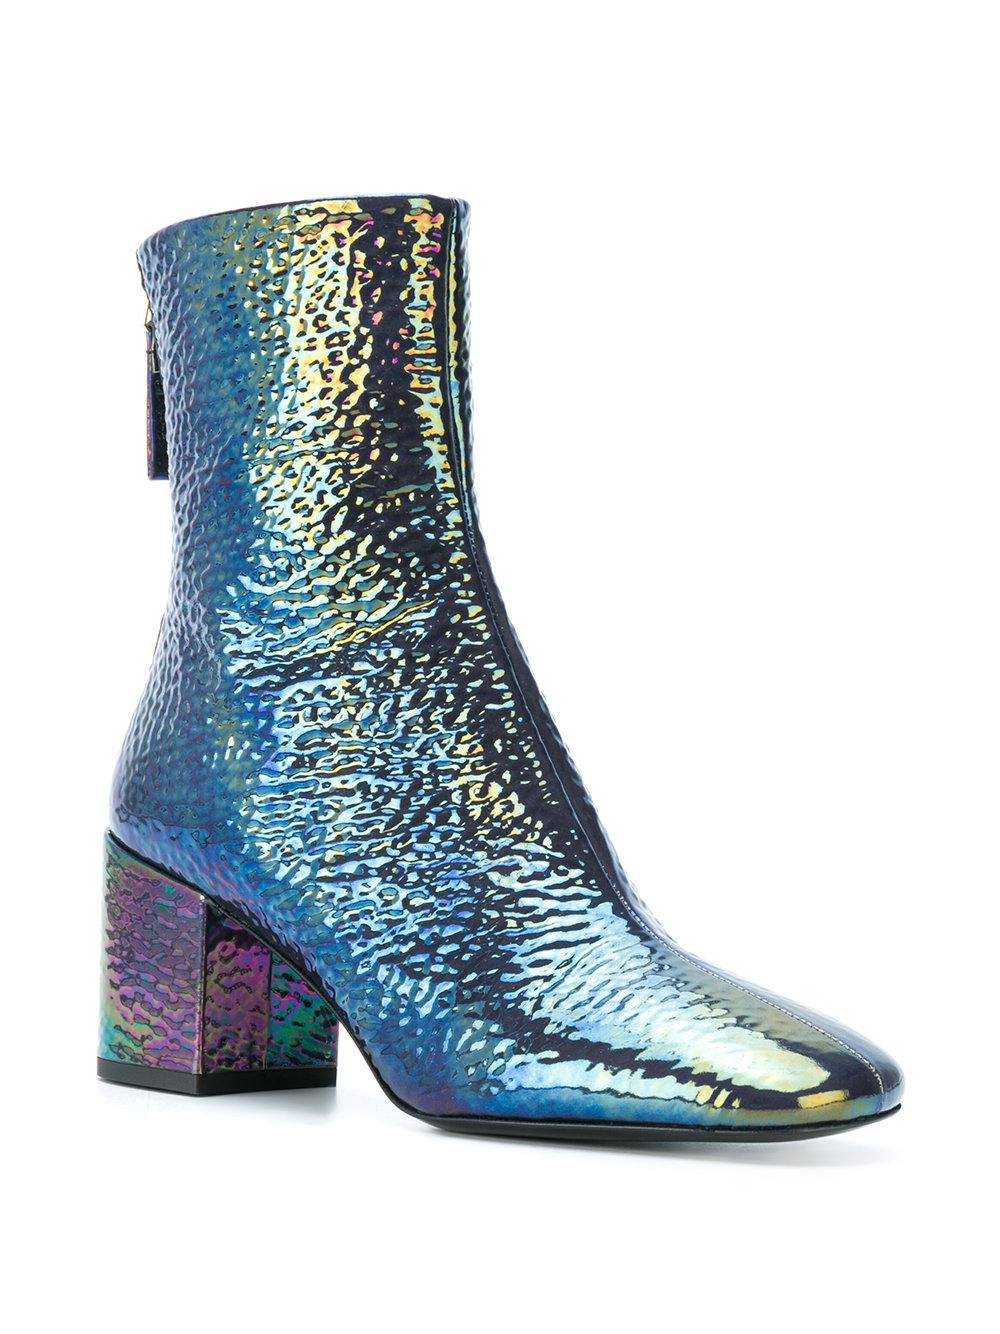 Premiata Leather Iridescent Finish Boots in Blue